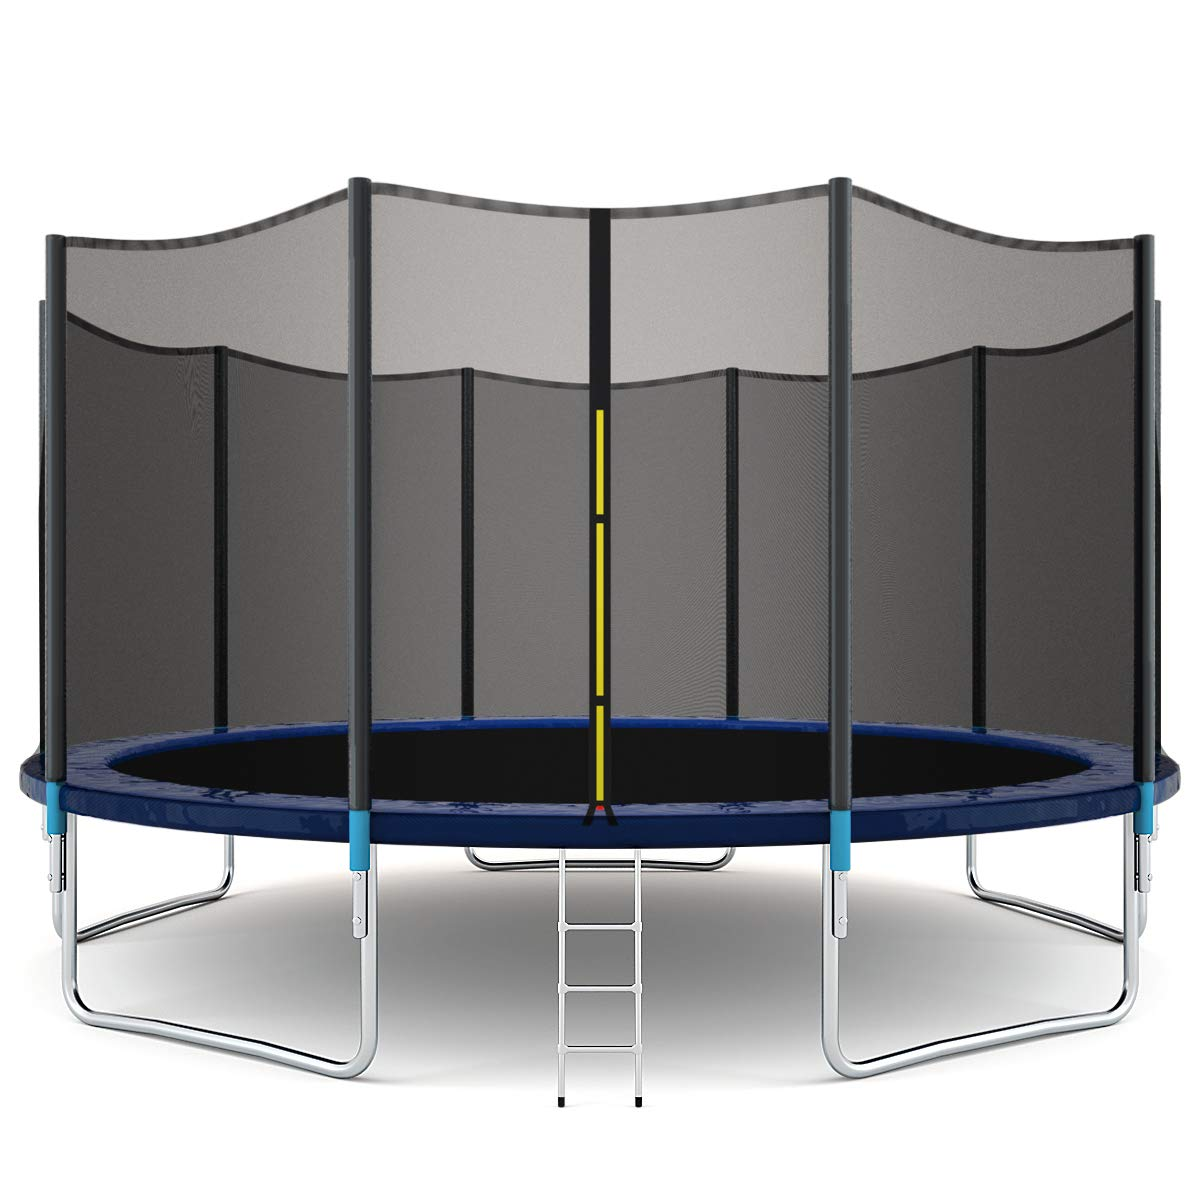 Giantex Trampoline Combo Bounce Jump Safety Enclosure Net W/Spring Pad Ladder, 15 FT